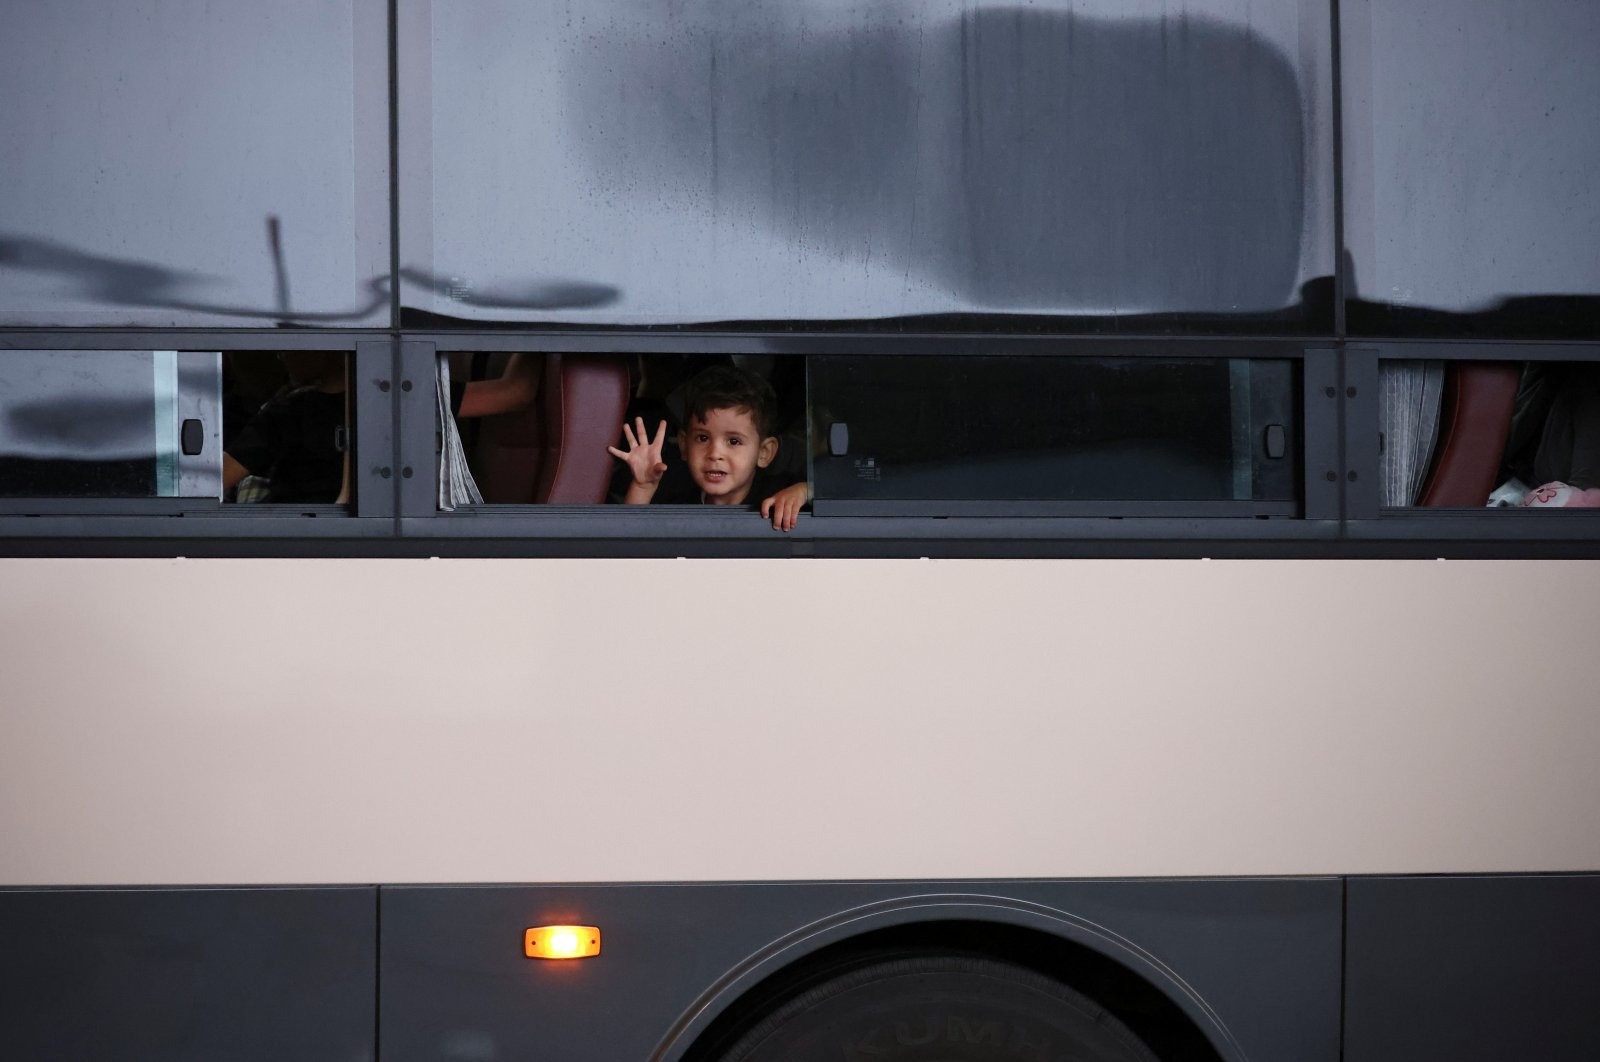 An Afghan boy waves as he leaves Incheon International Airport after arriving in South Korea with other Afghan evacuees who supported the South Korean government's activities in Afghanistan, in Incheon, South Korea, Aug. 26, 2021. (Reuters Photo)